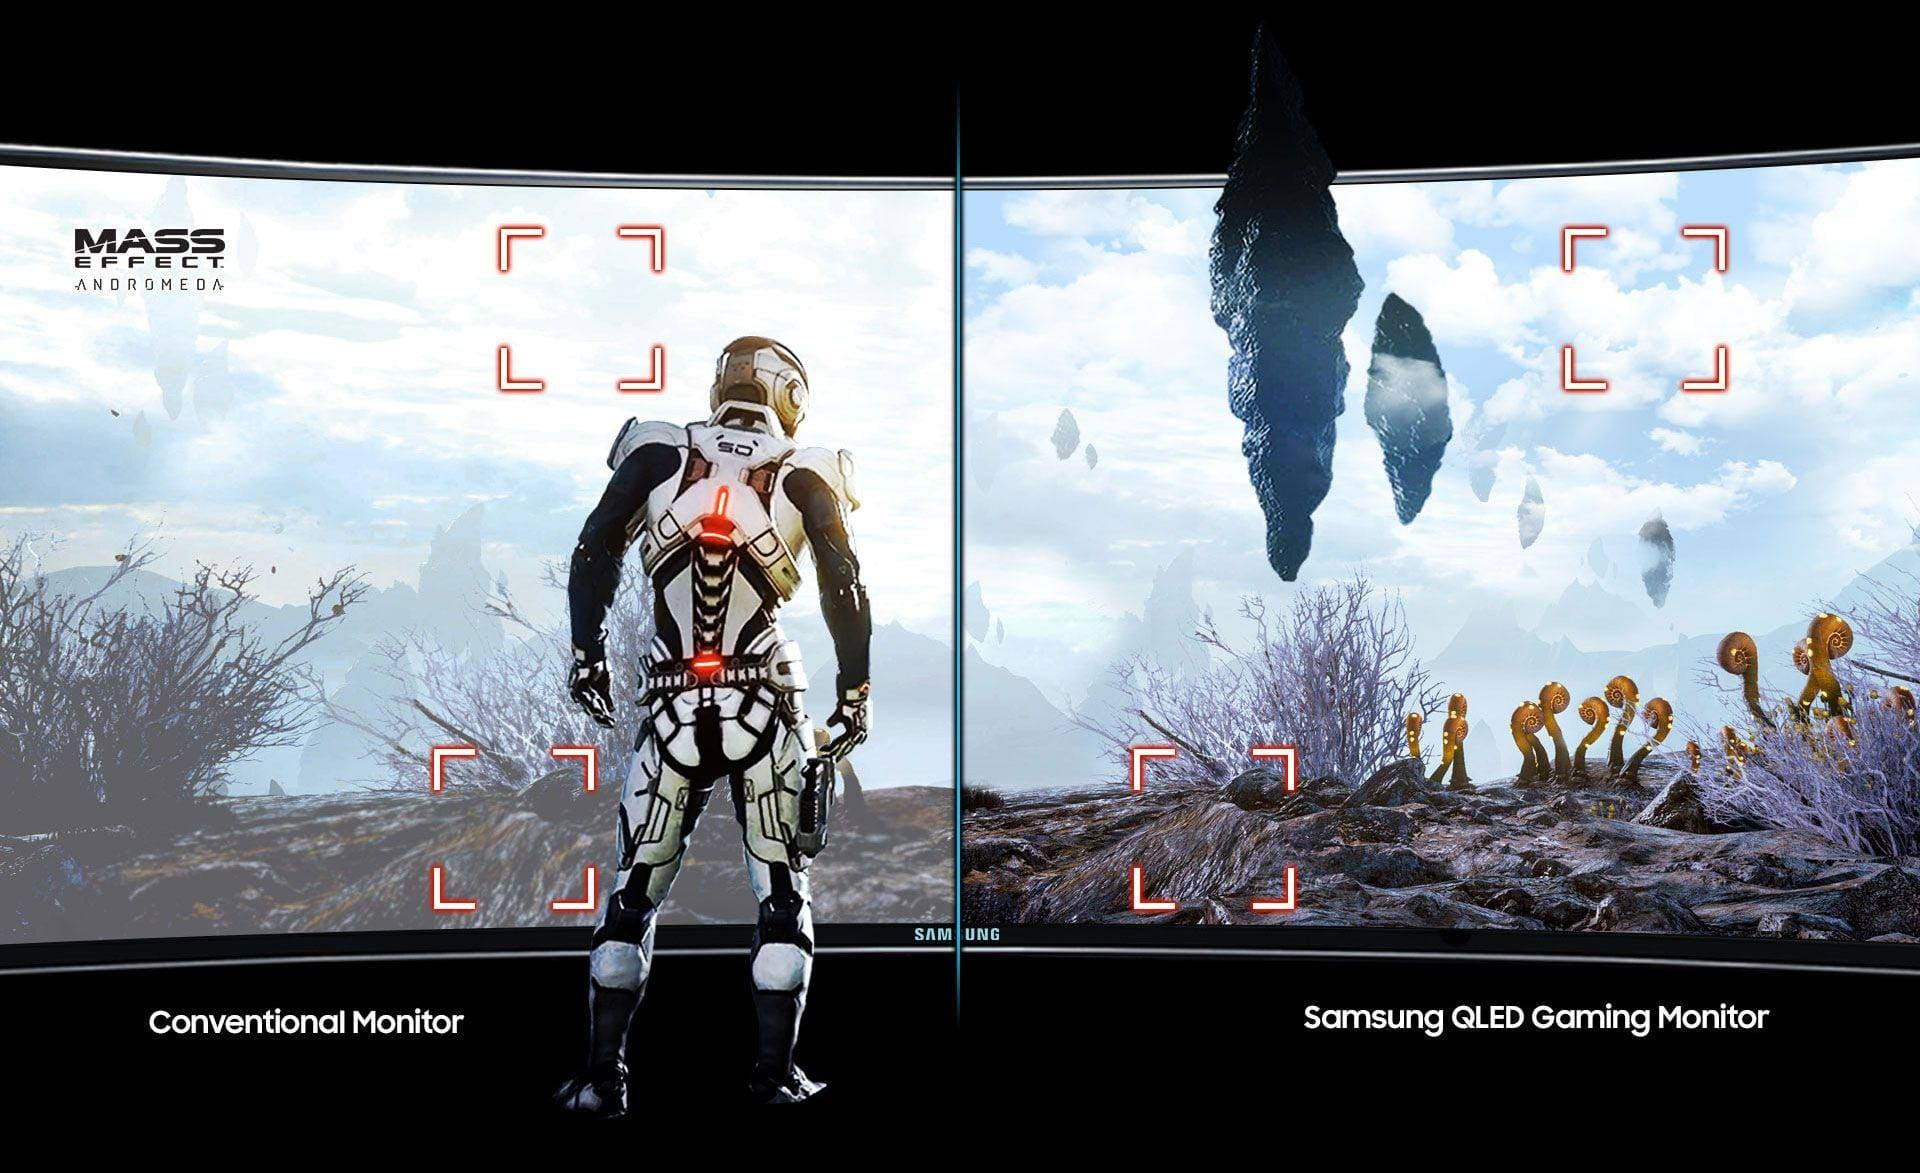 Still-cut image comparing conventional monitor with Samsung QLED Gaming monitor, which is featured by High Dynamic Range display, darker black as well as wider range of rich and saturated hues.